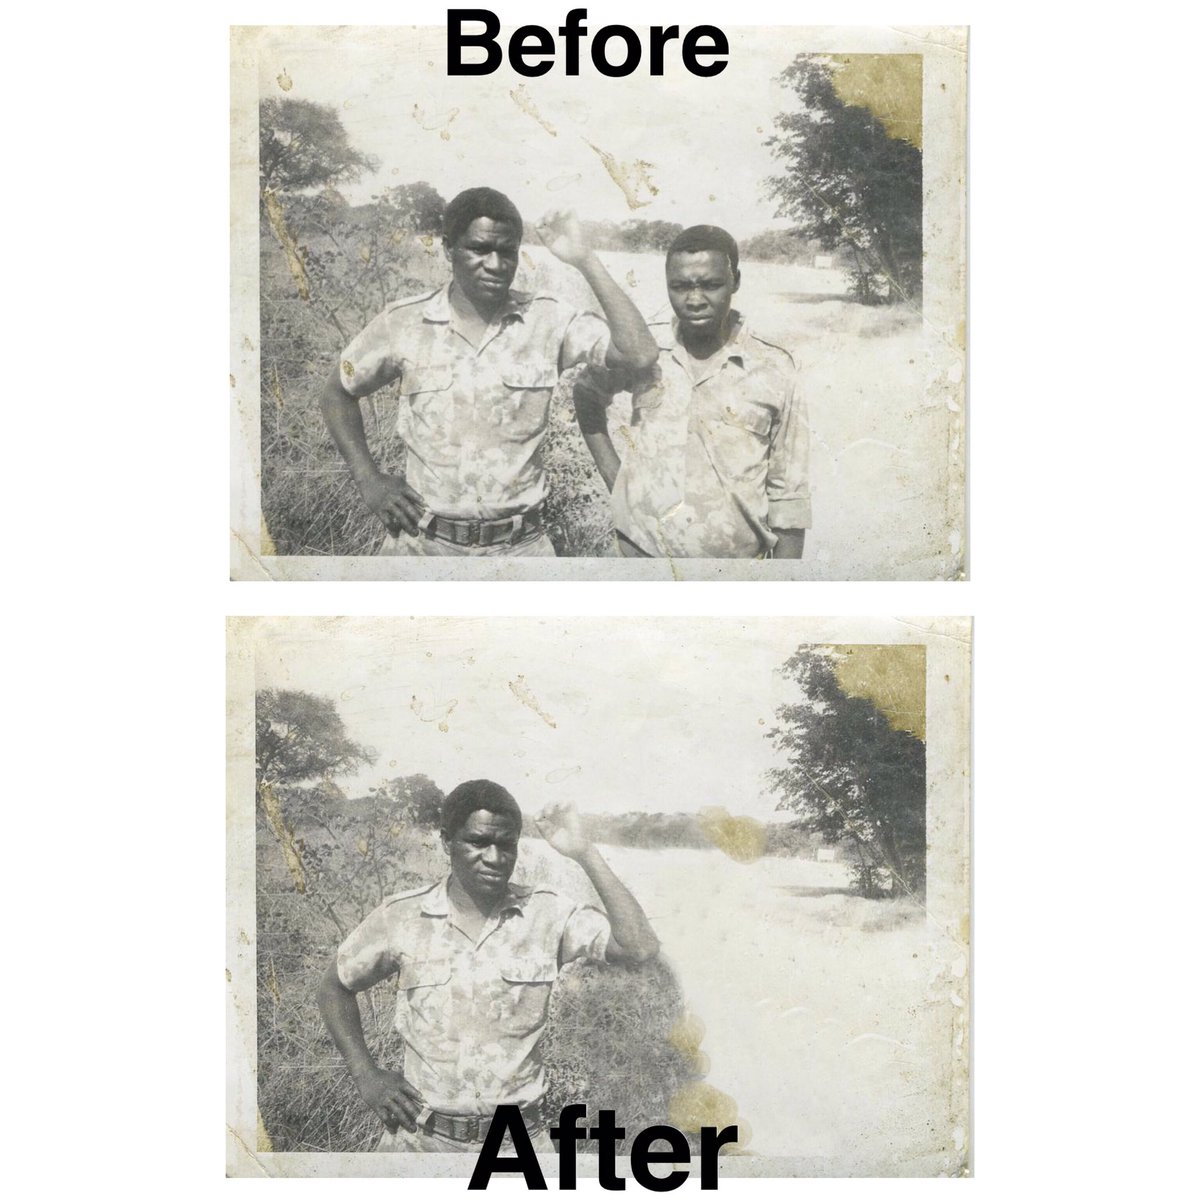 I need of professional photo Restoration? Look no further.  I offer:  •Removal of objects/people  •Quality Restoration  •Photo Retouching  •Background Removal  Contact: 0816457309 or DM me. <br>http://pic.twitter.com/Zxd6G7niug